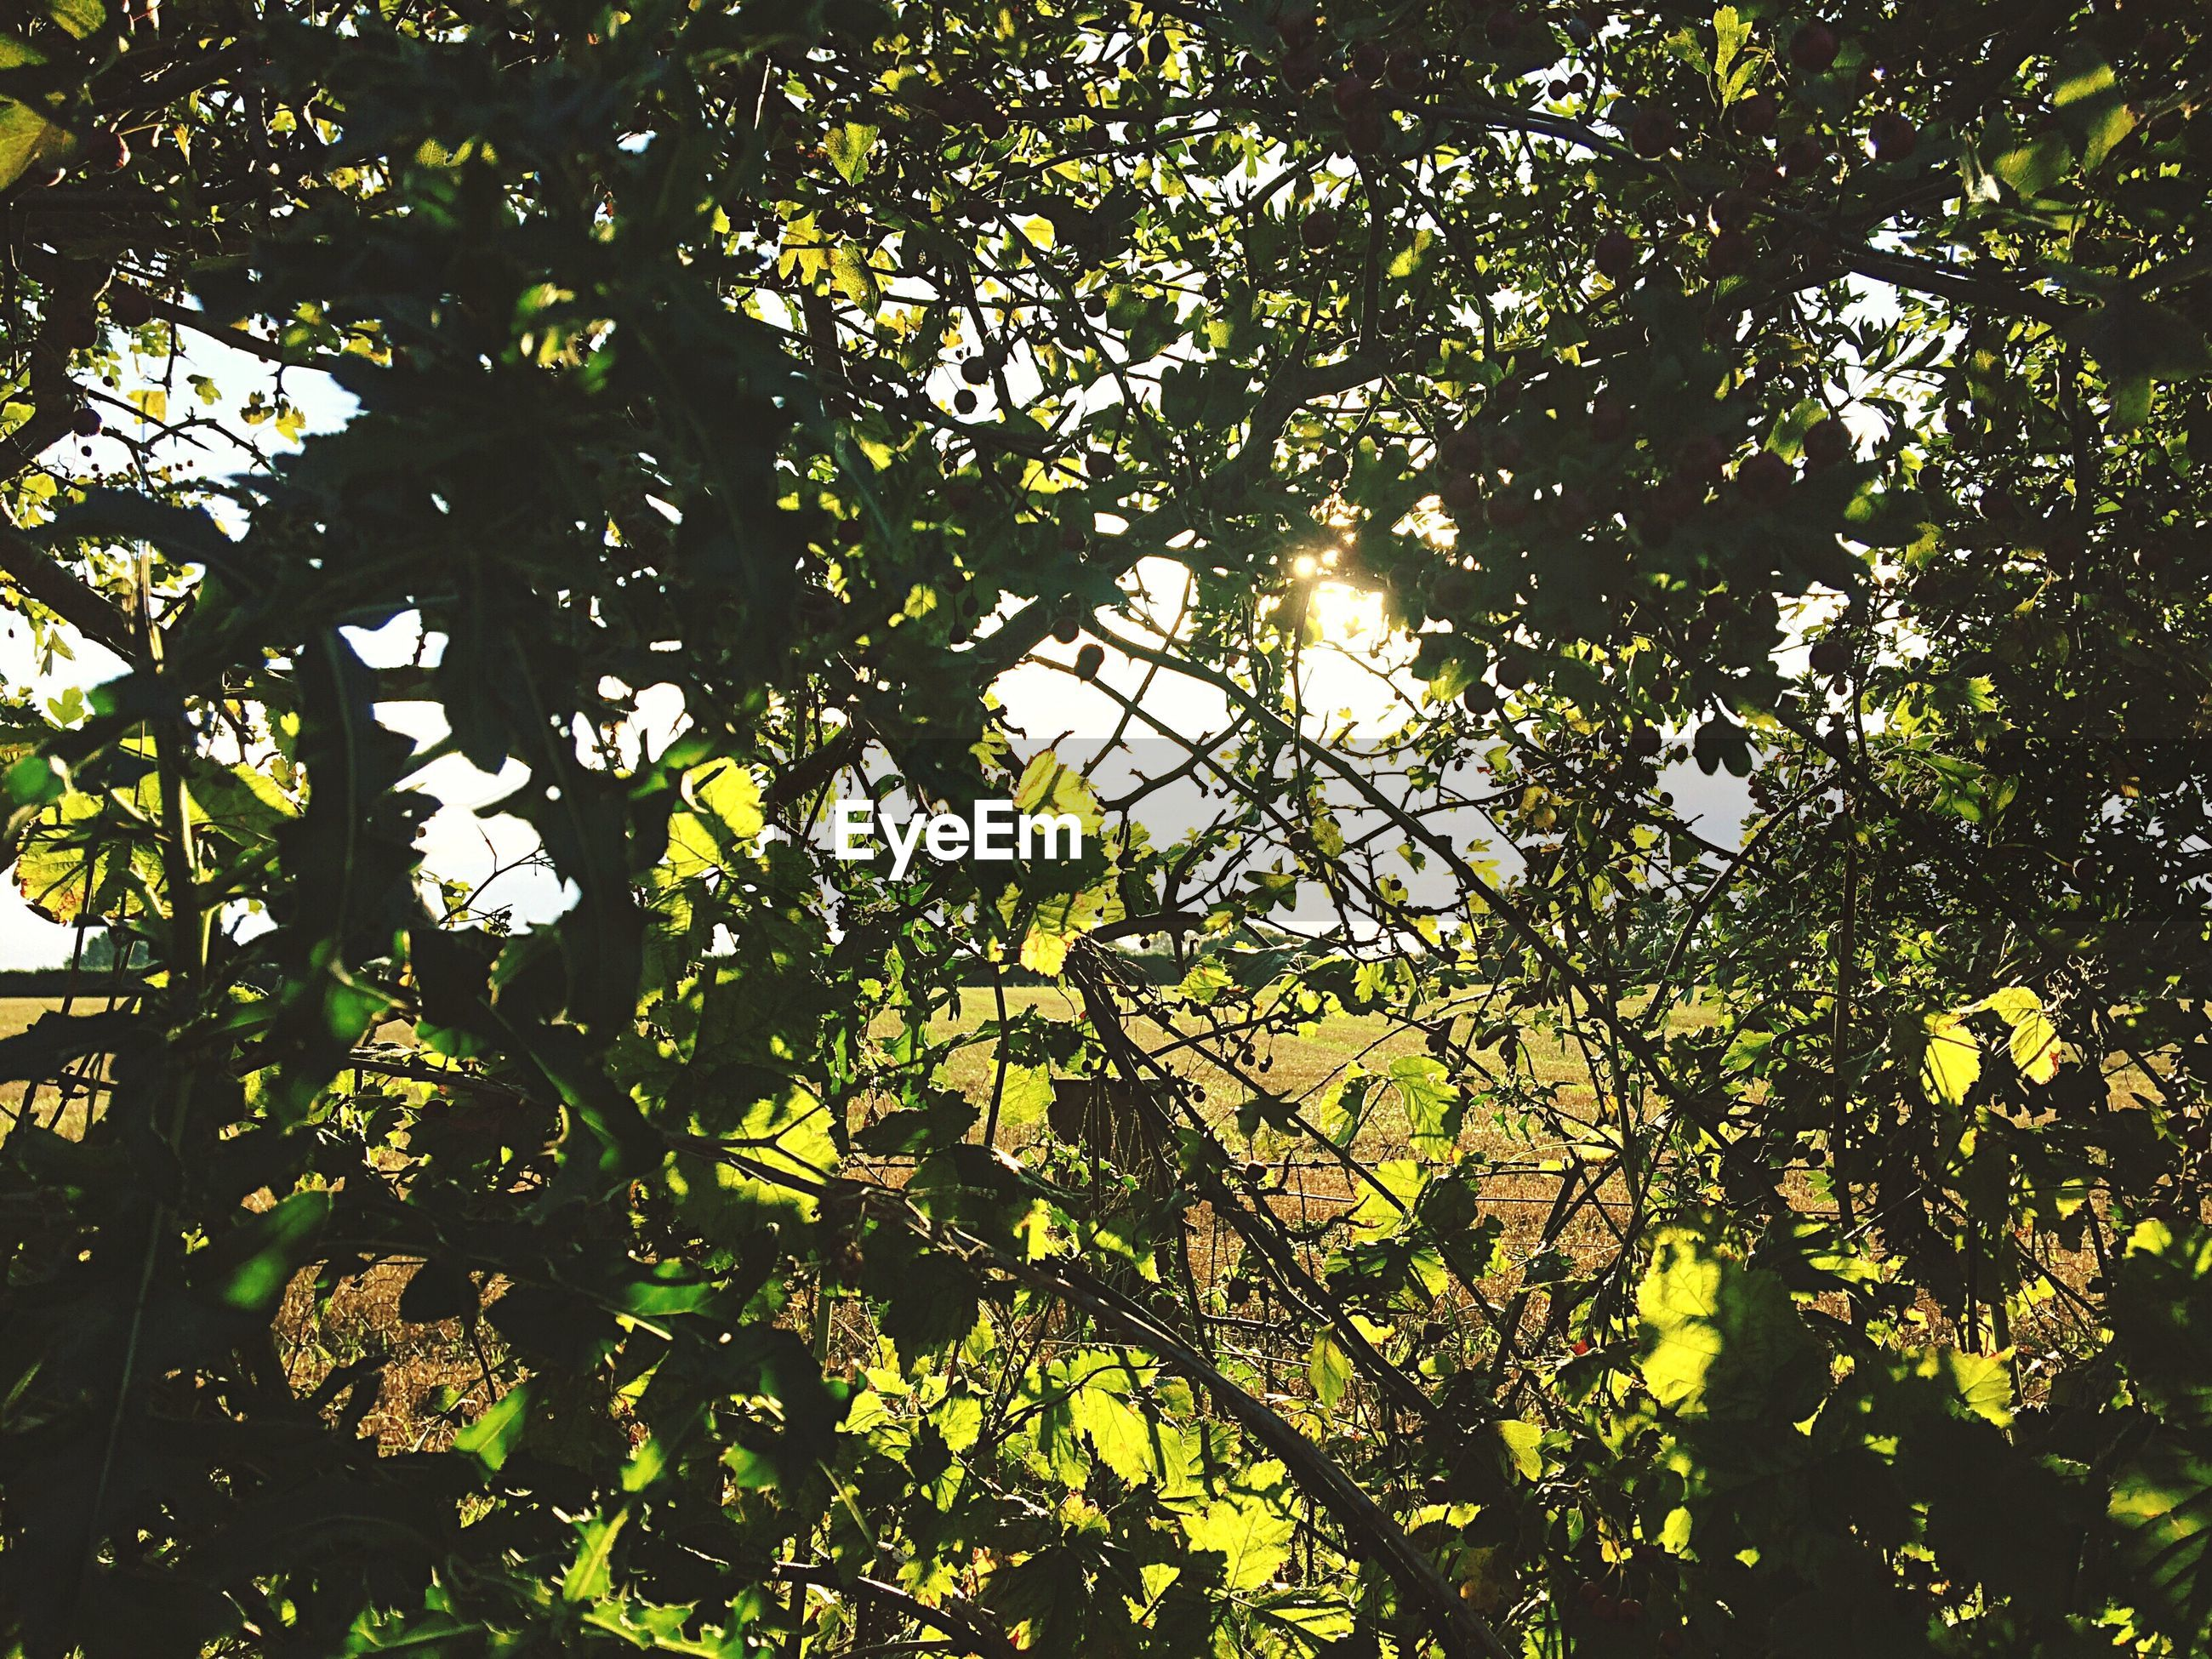 nature, tree, backgrounds, growth, sunlight, low angle view, beauty in nature, no people, sky, green color, full frame, outdoors, branch, summer, tranquility, day, close-up, lush - description